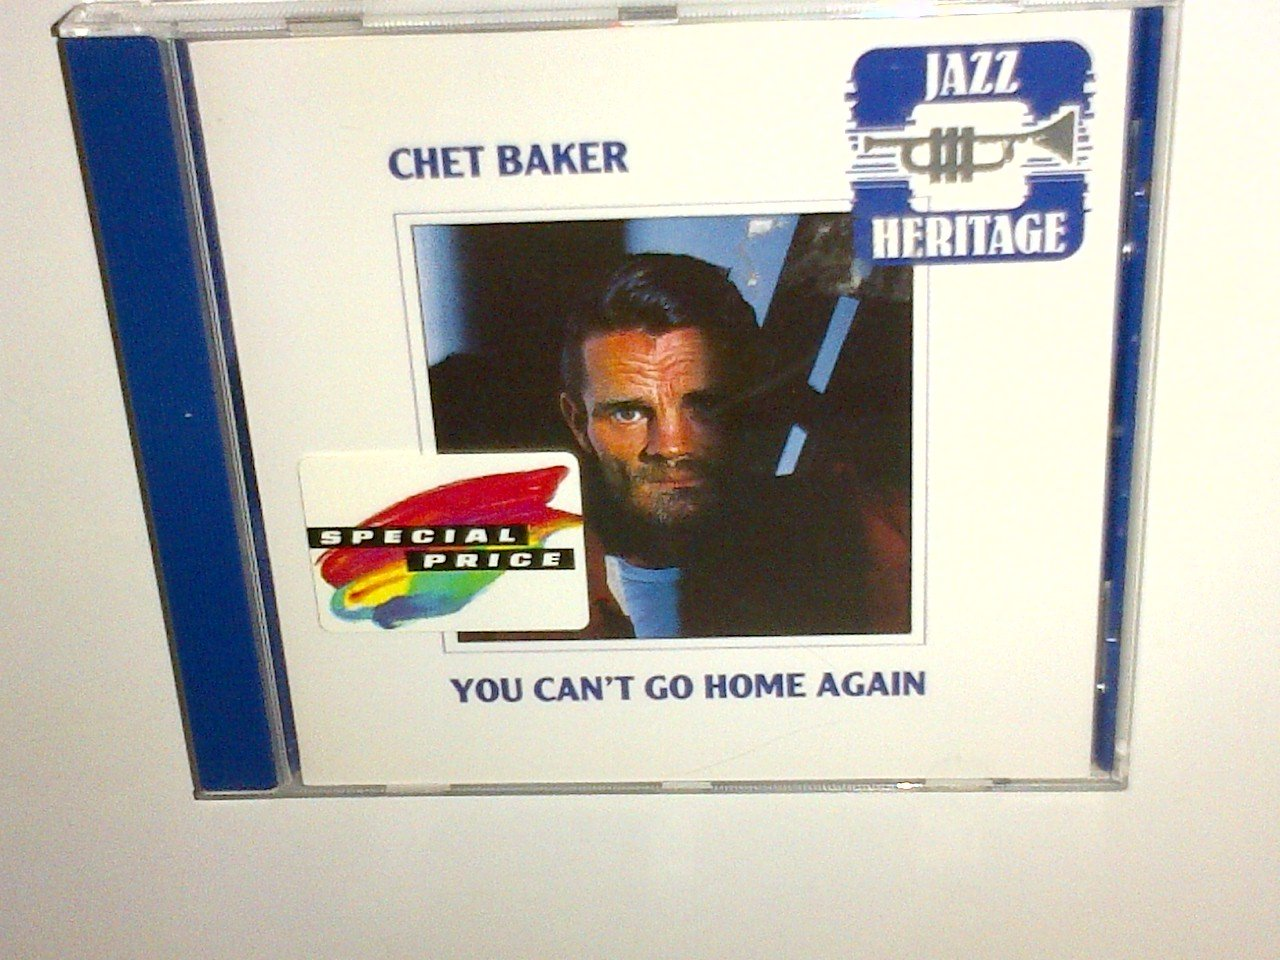 Chet Baker - You can't go home again, CD